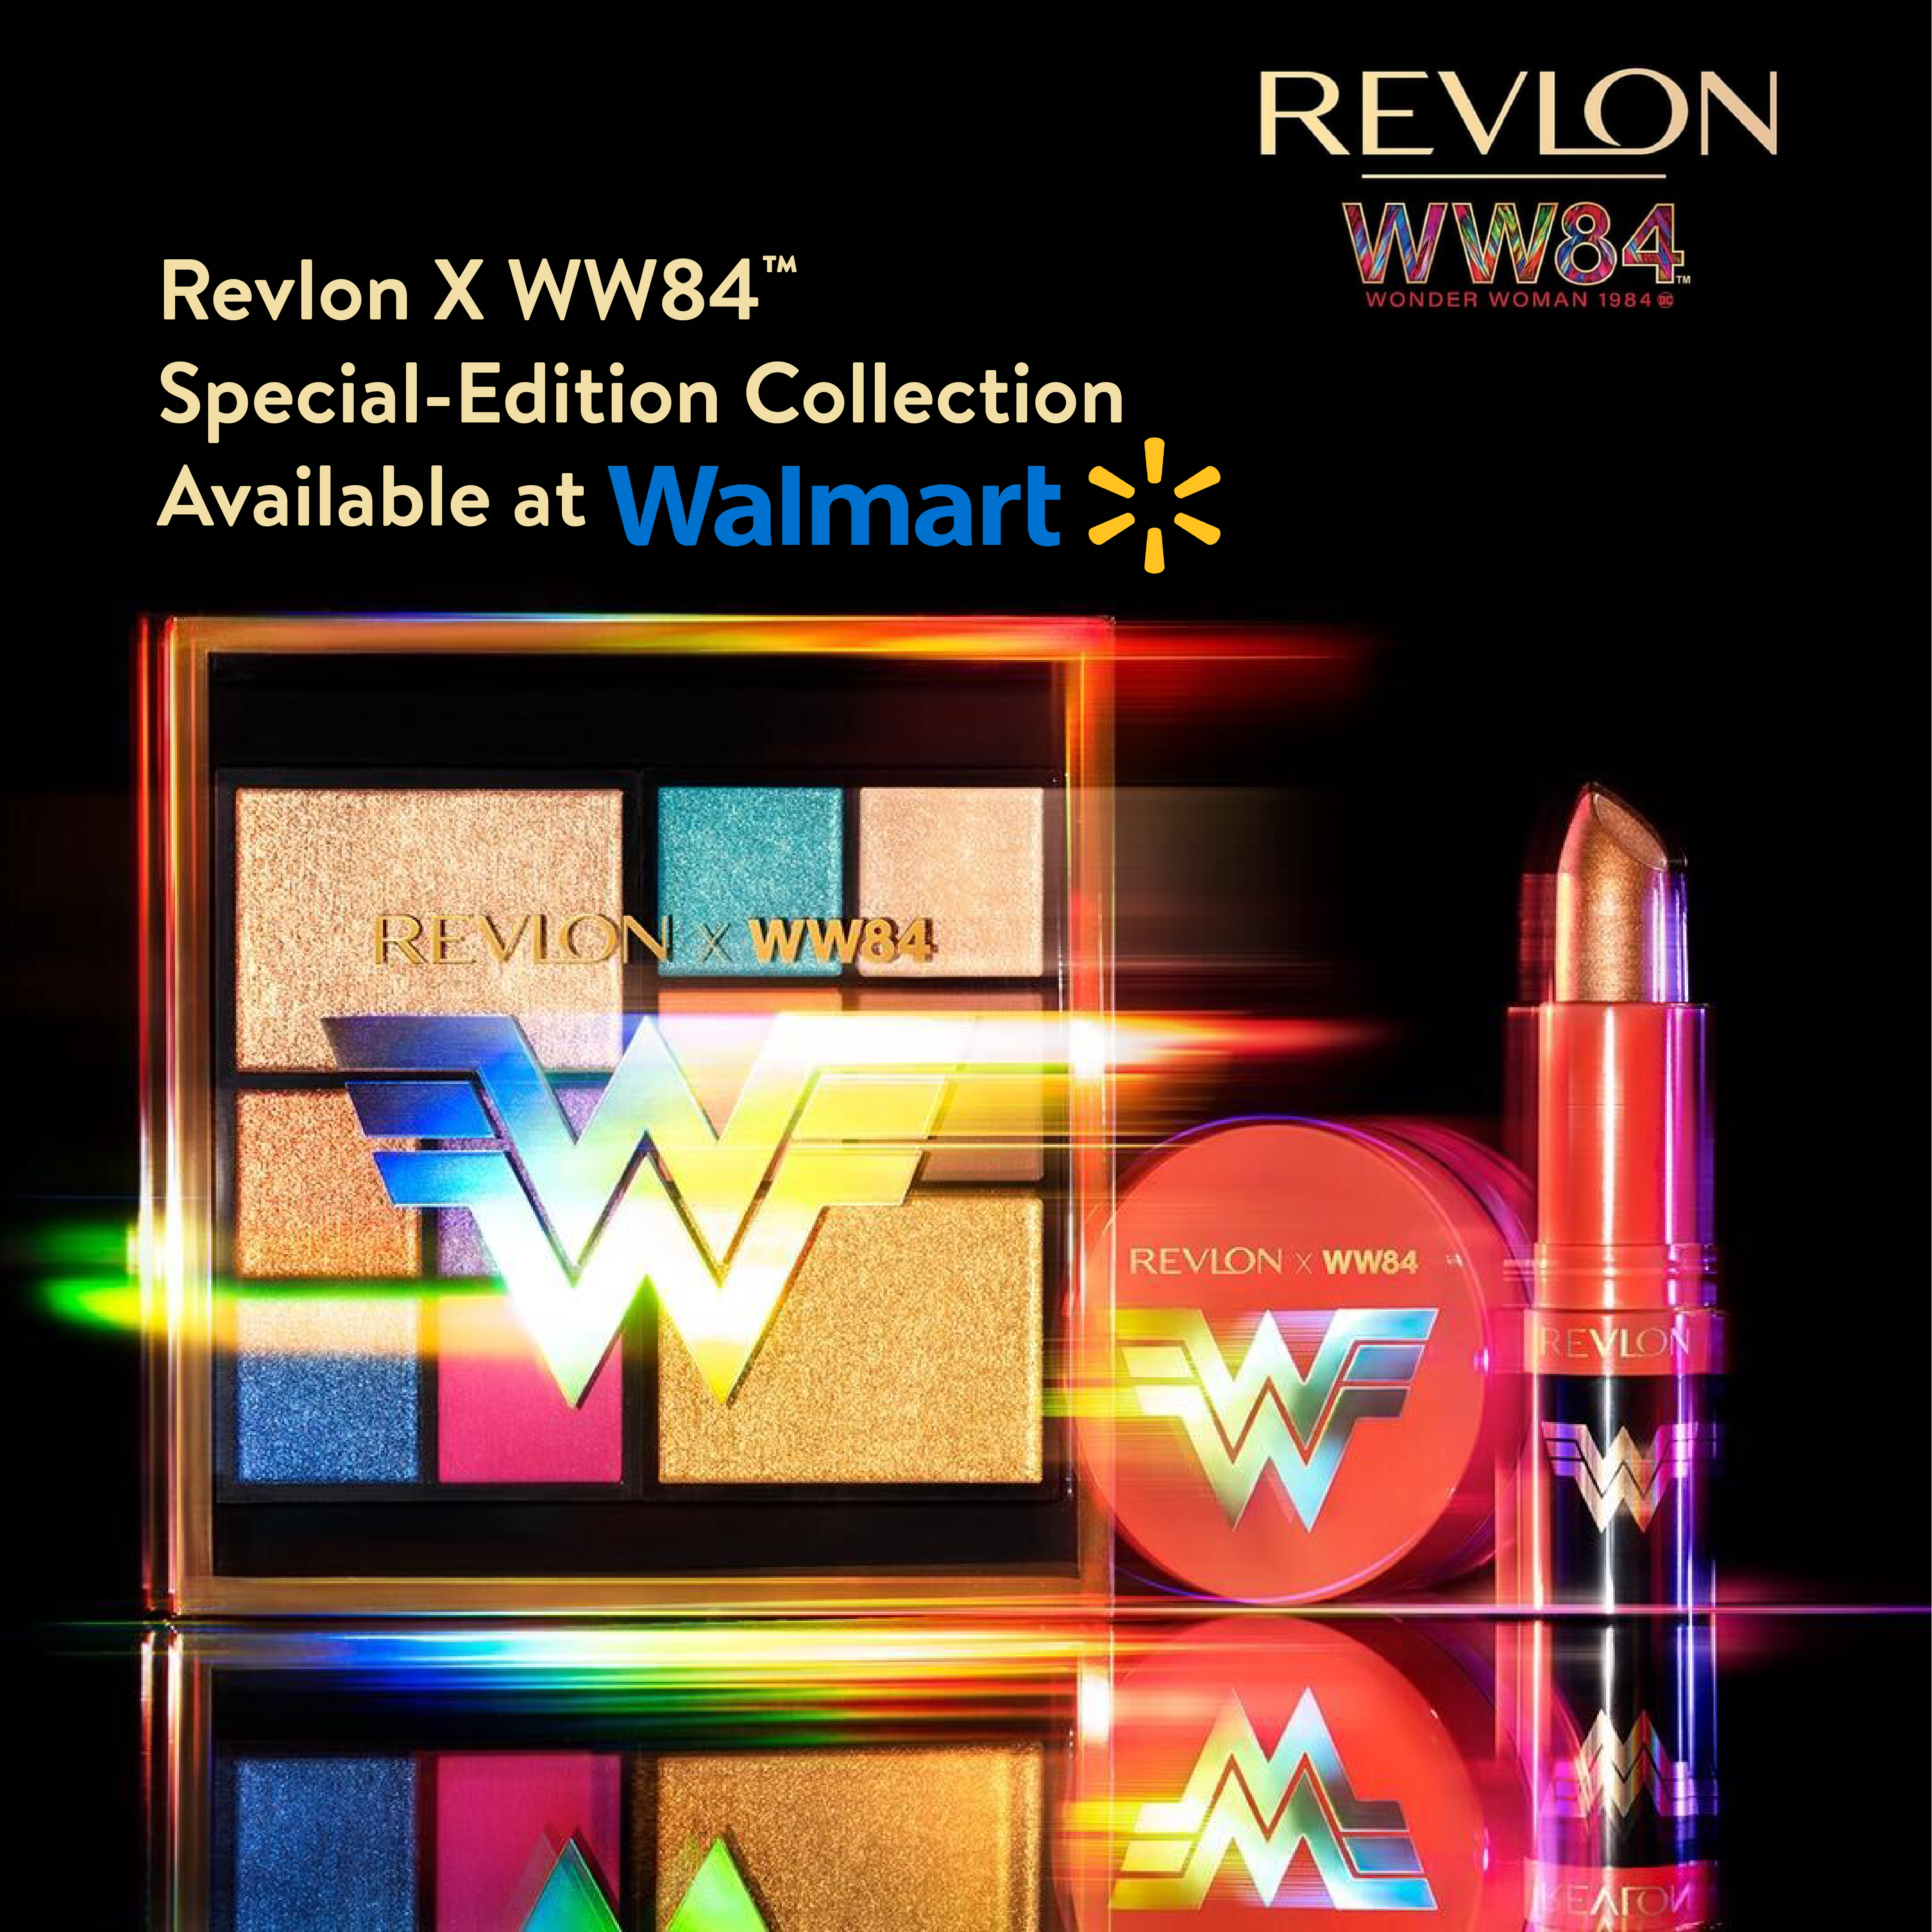 A New Era Begins Beauty From Wonder Woman 1984 And Revlon In 2020 Wonder Woman Makeup Beauty Products Drugstore Hard Candy Makeup